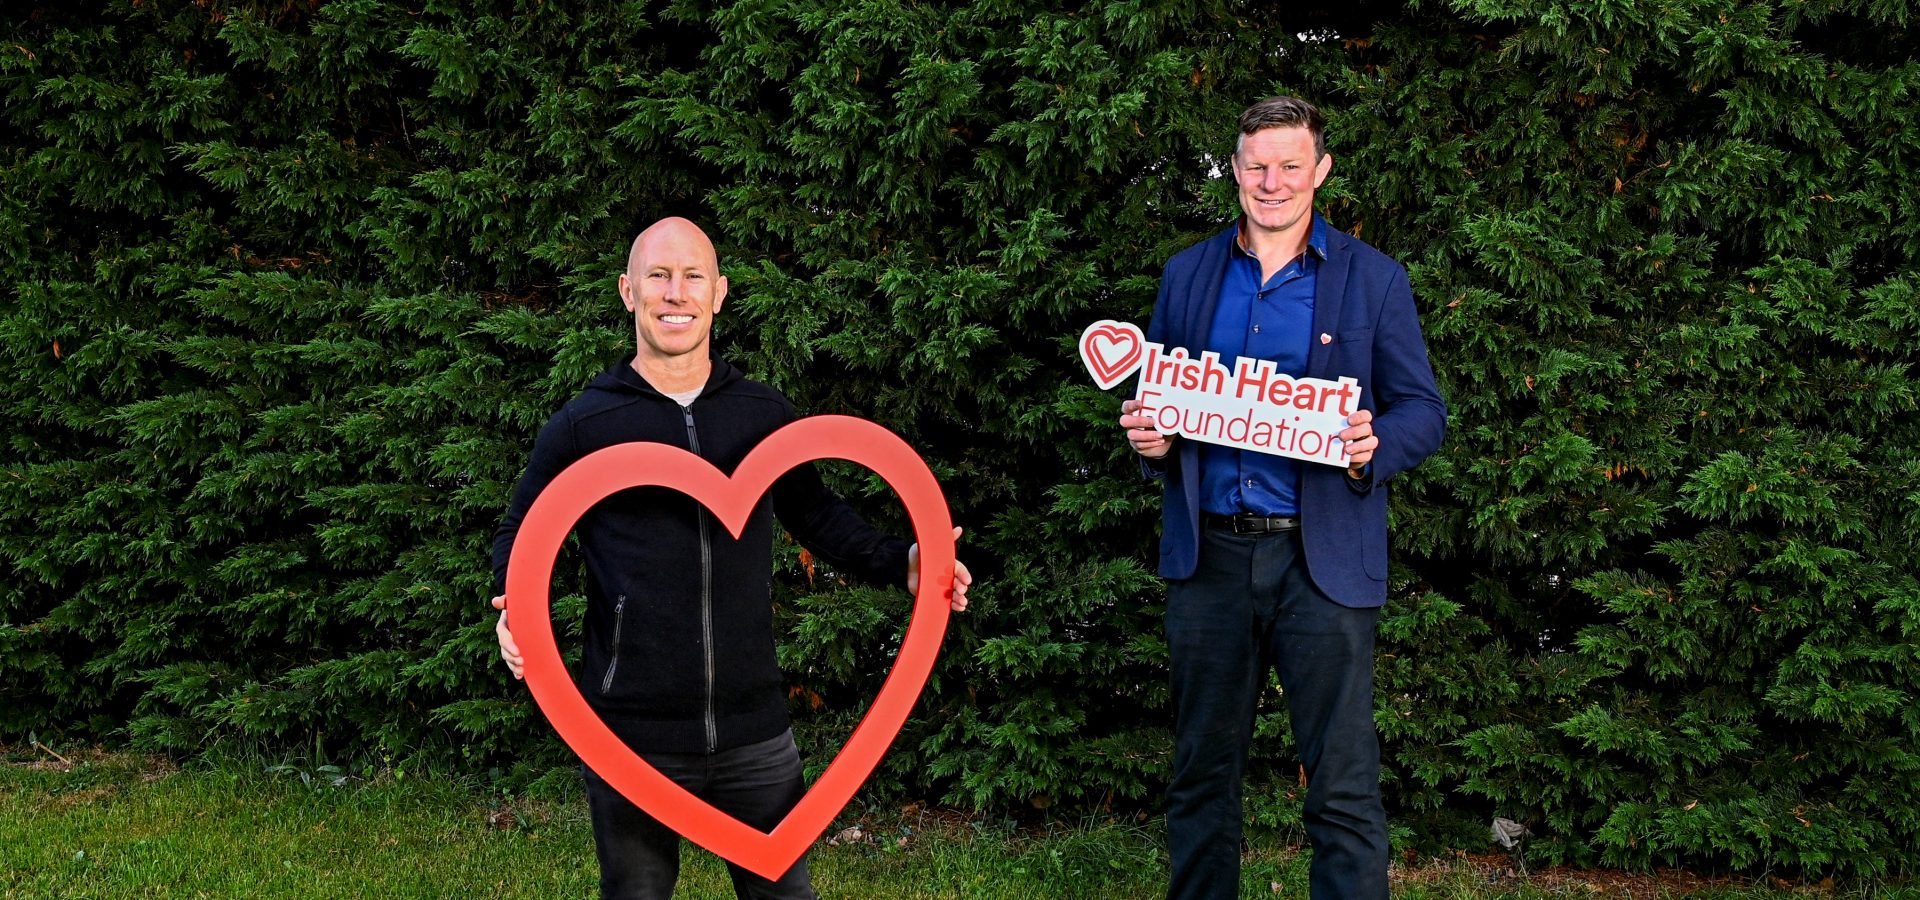 Past Players join Irish Heart Foundation for Reboot Campaign